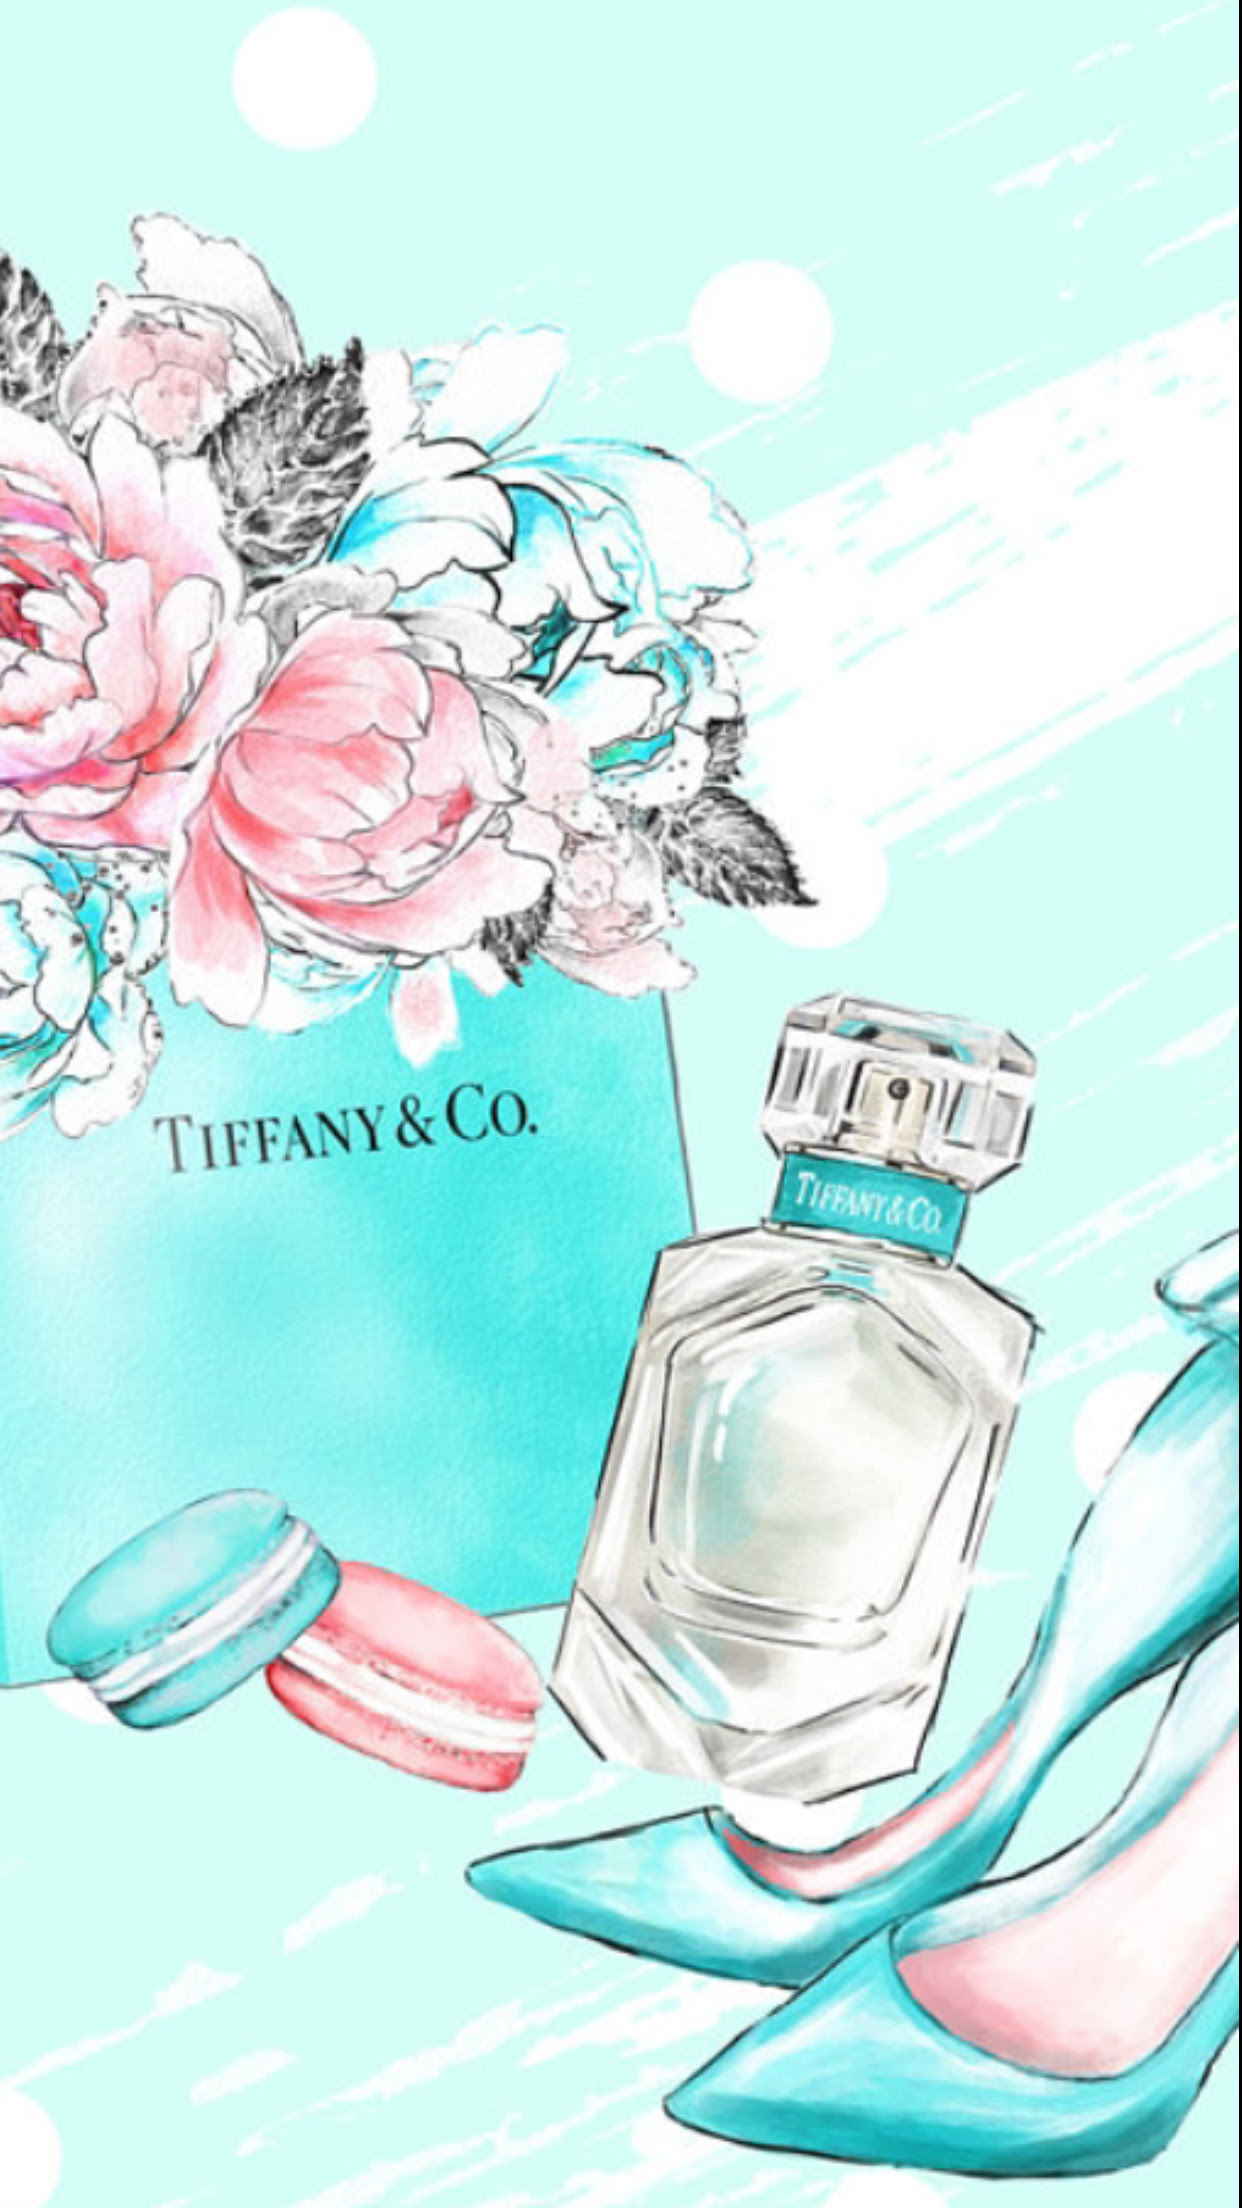 Tiffany Co Wallpaper 37 Images